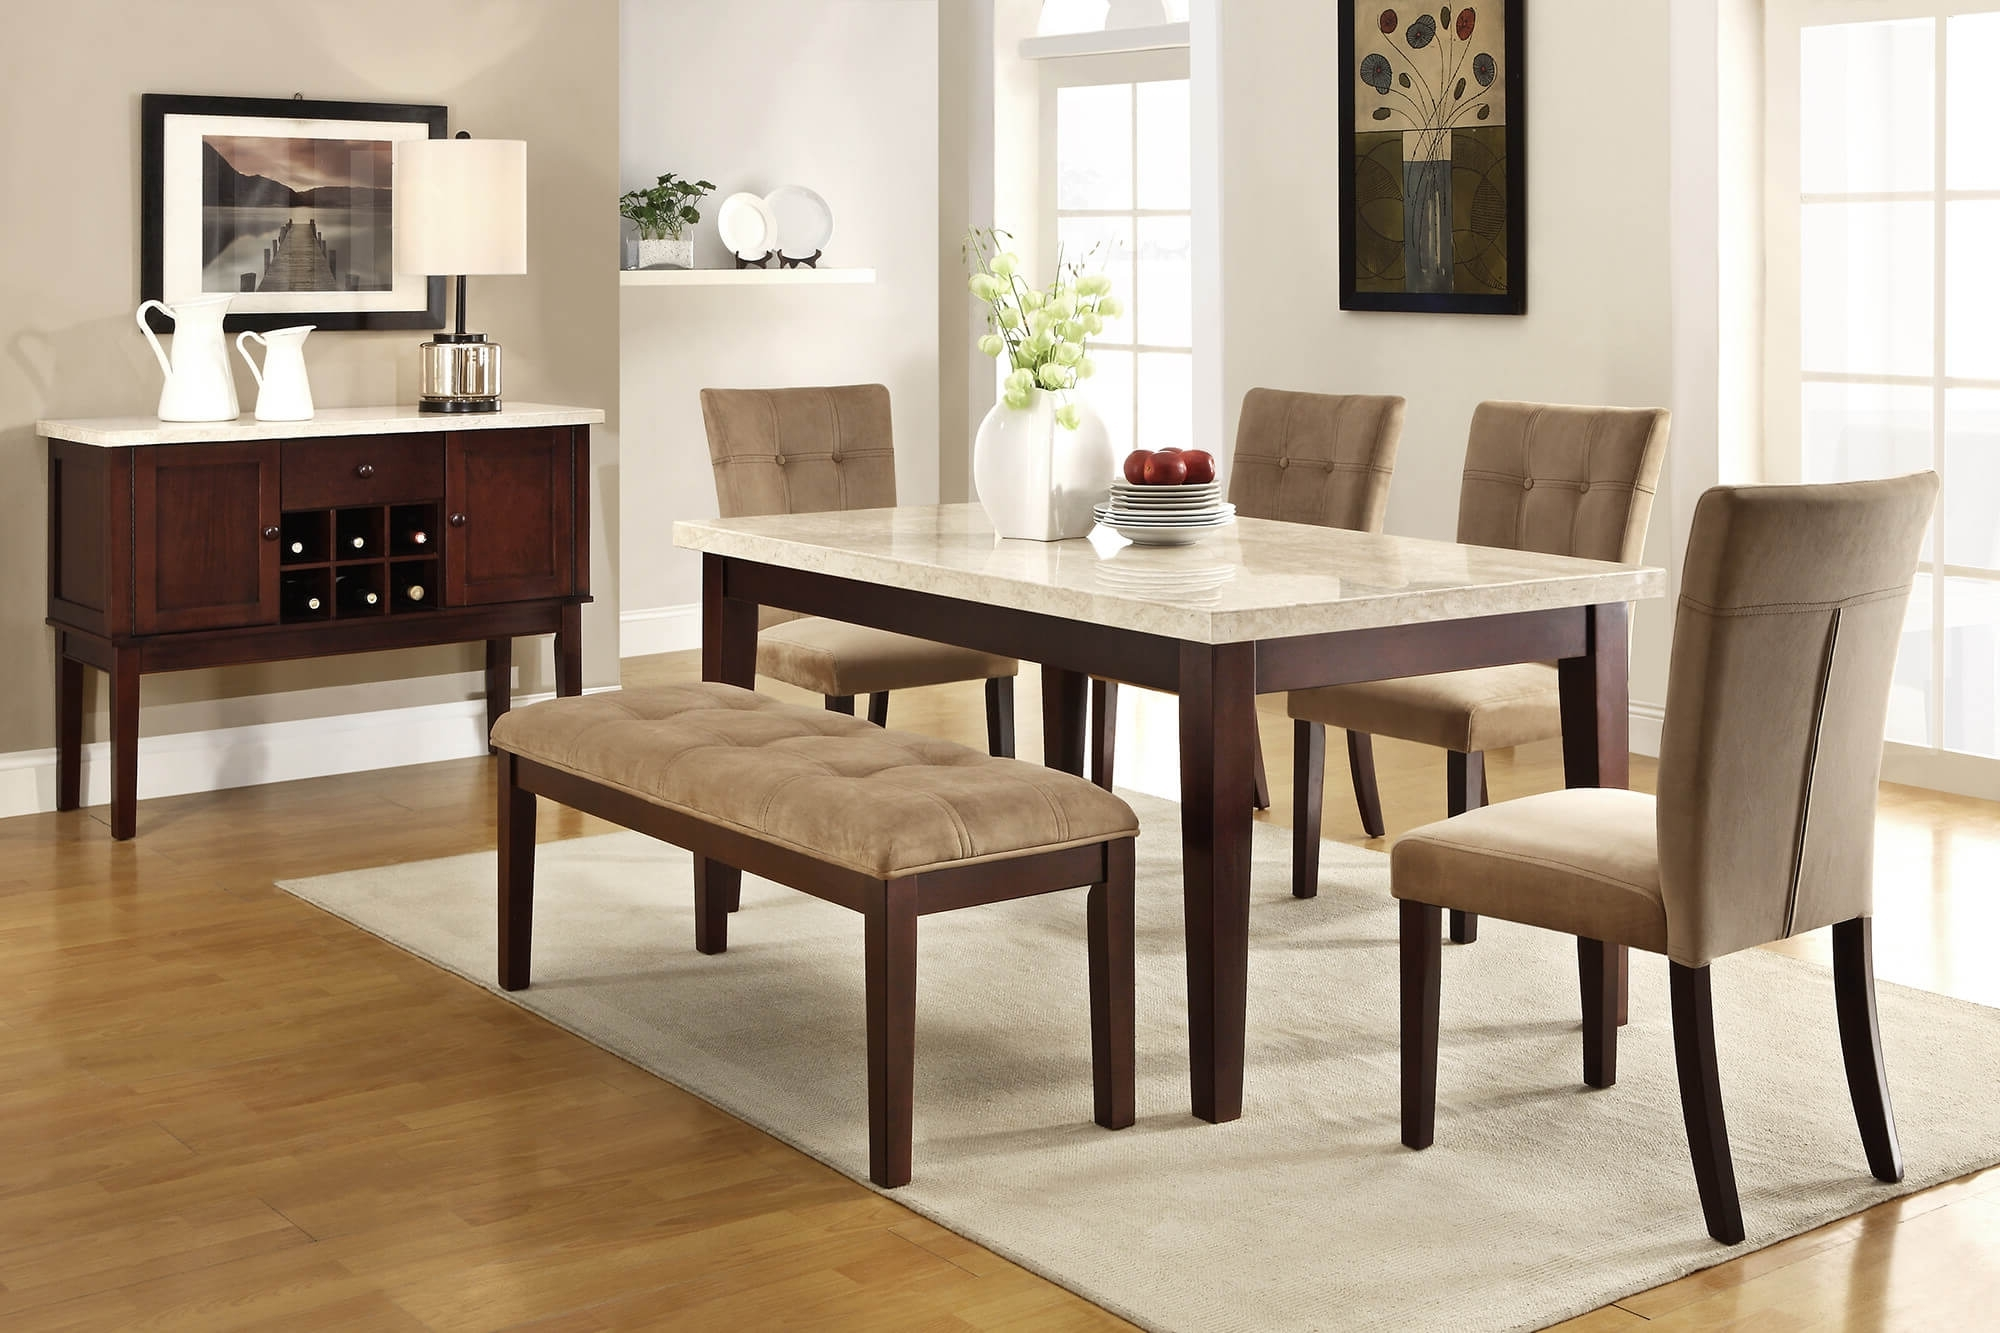 Cheap Dining Tables And Chairs Throughout Well Known 26 Dining Room Sets (Big And Small) With Bench Seating (2018) (Gallery 10 of 25)